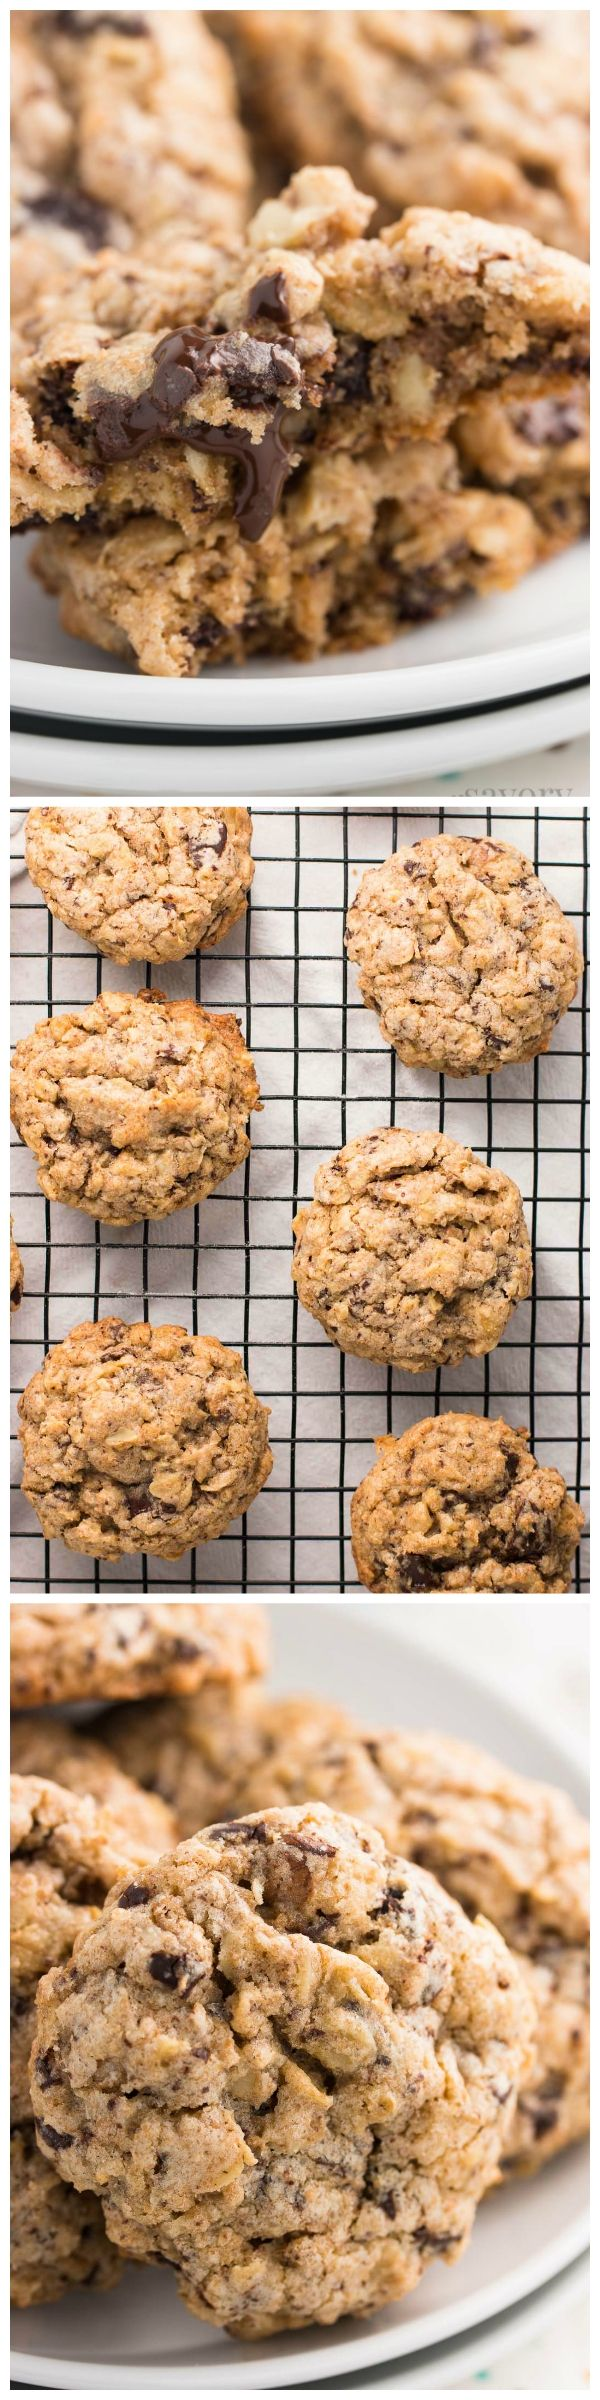 Easy oatmeal cookies recipe without butter